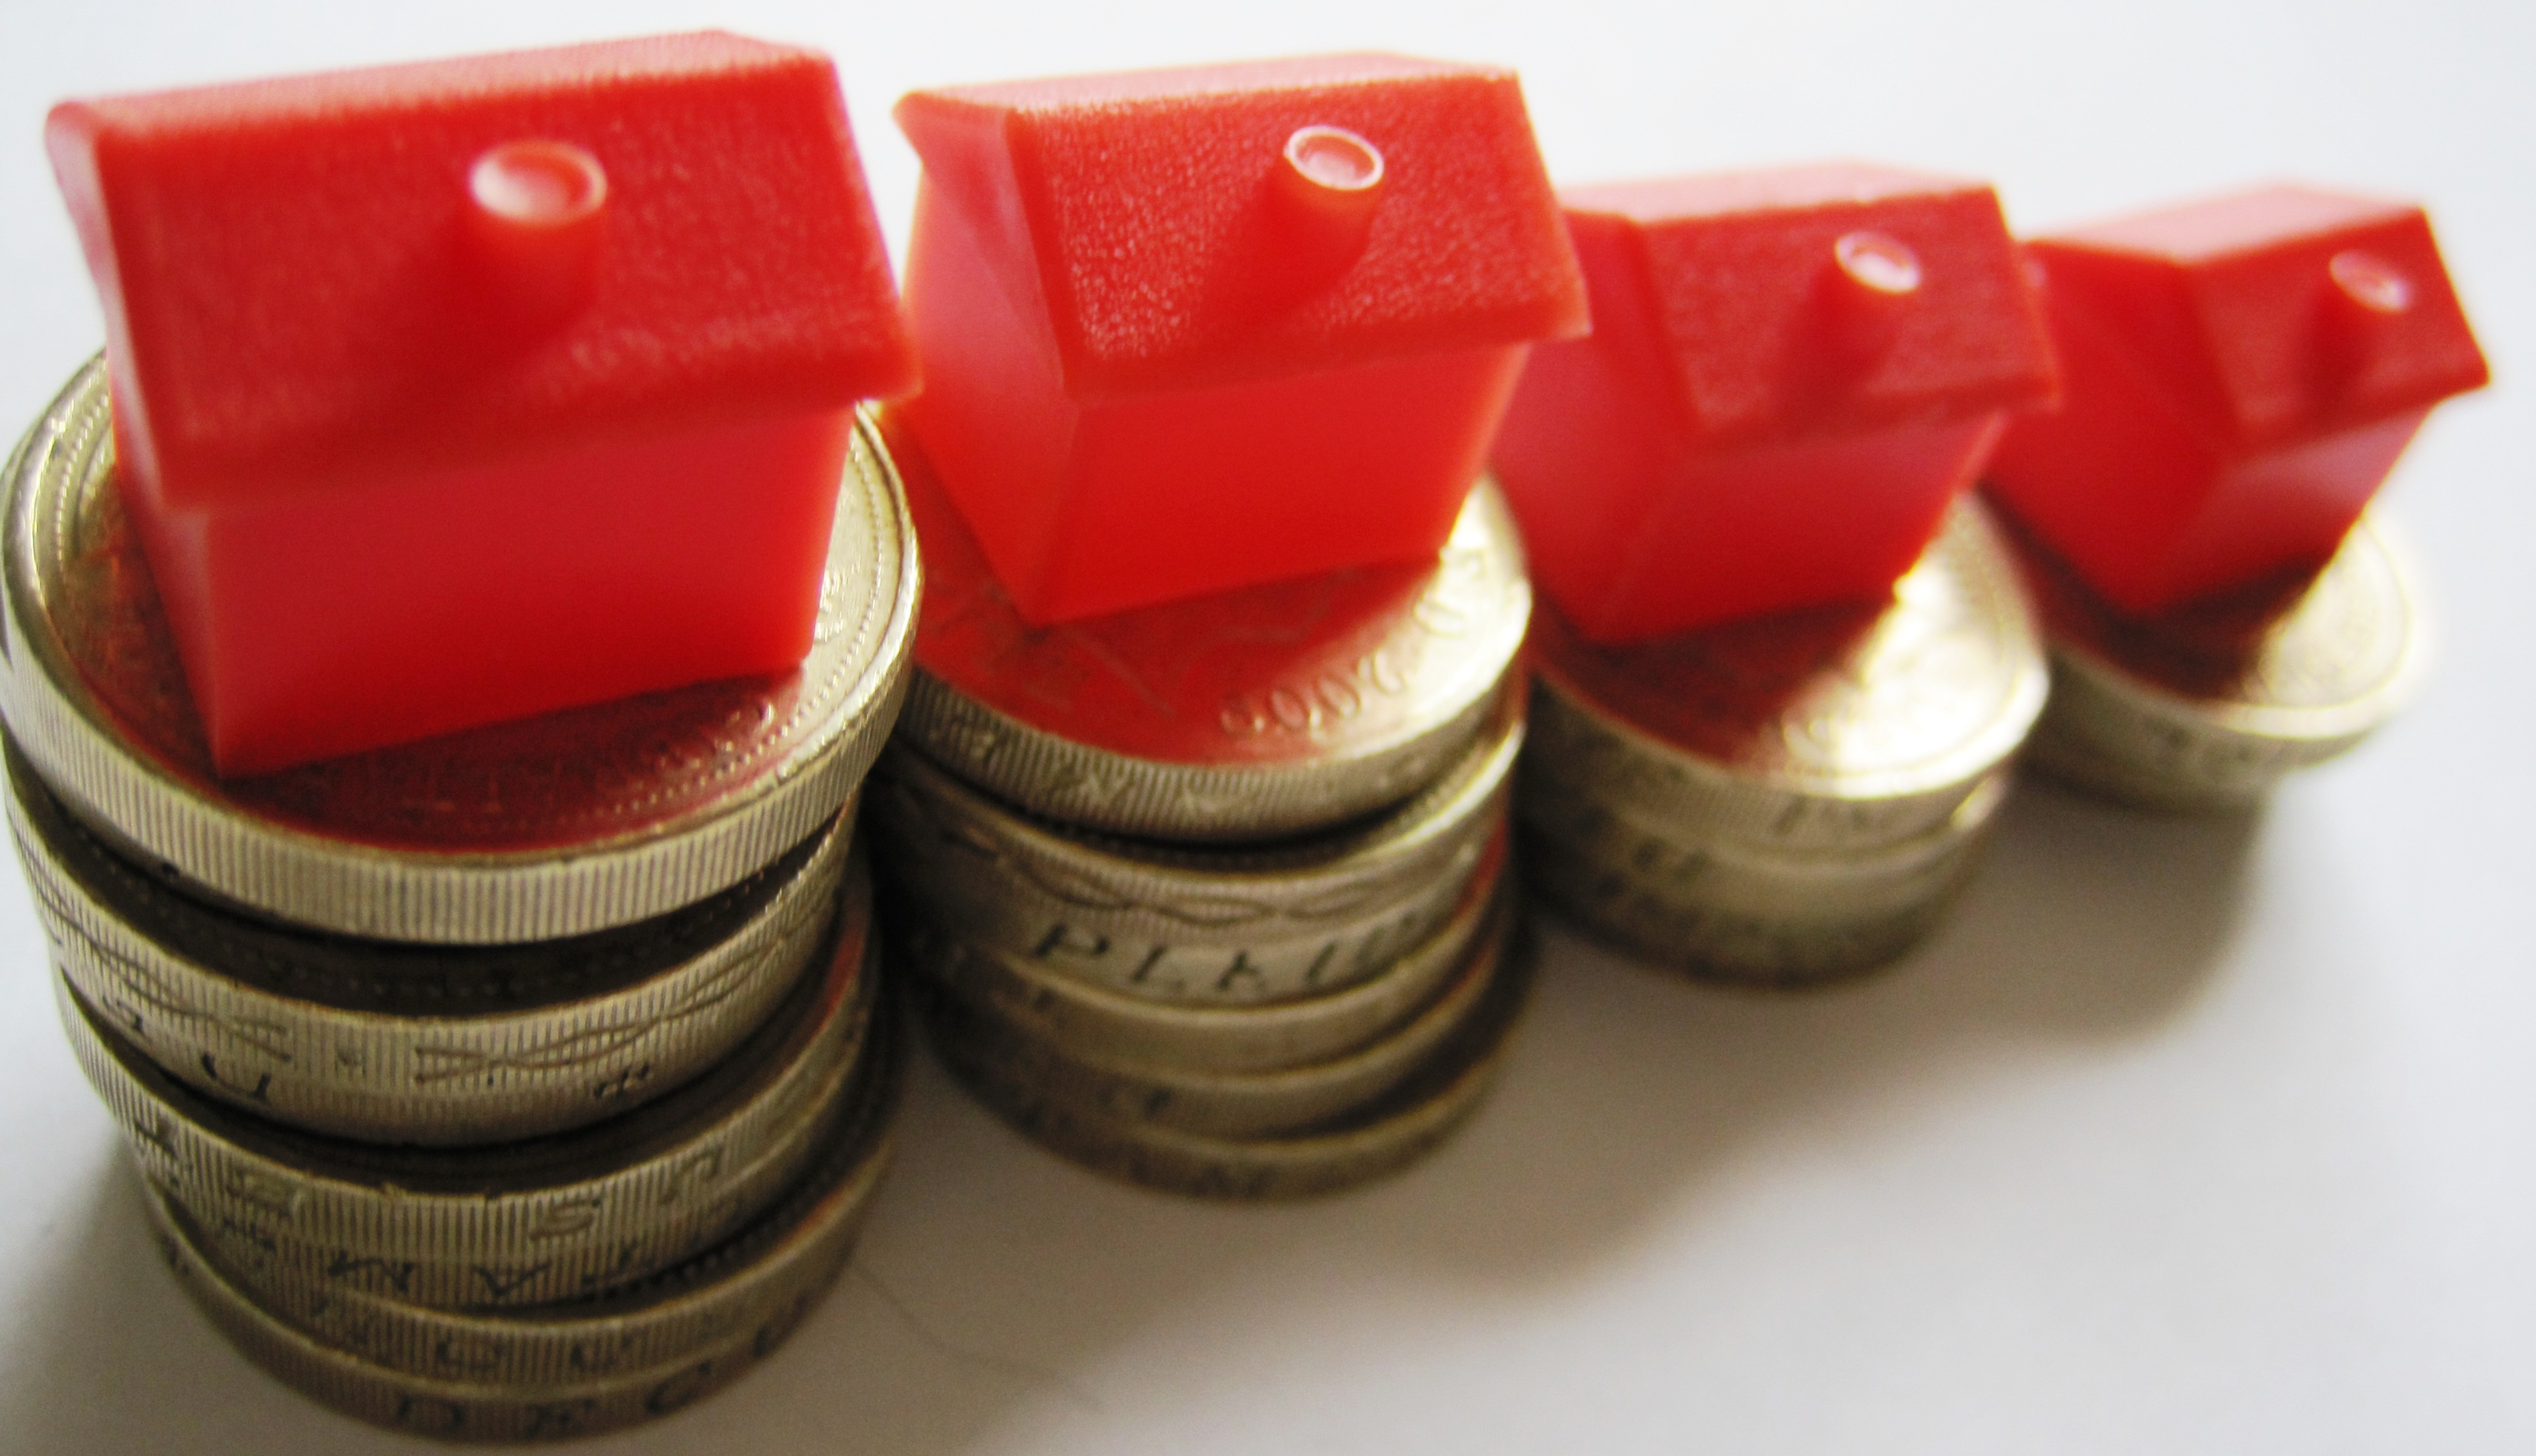 Buy-to-let investments